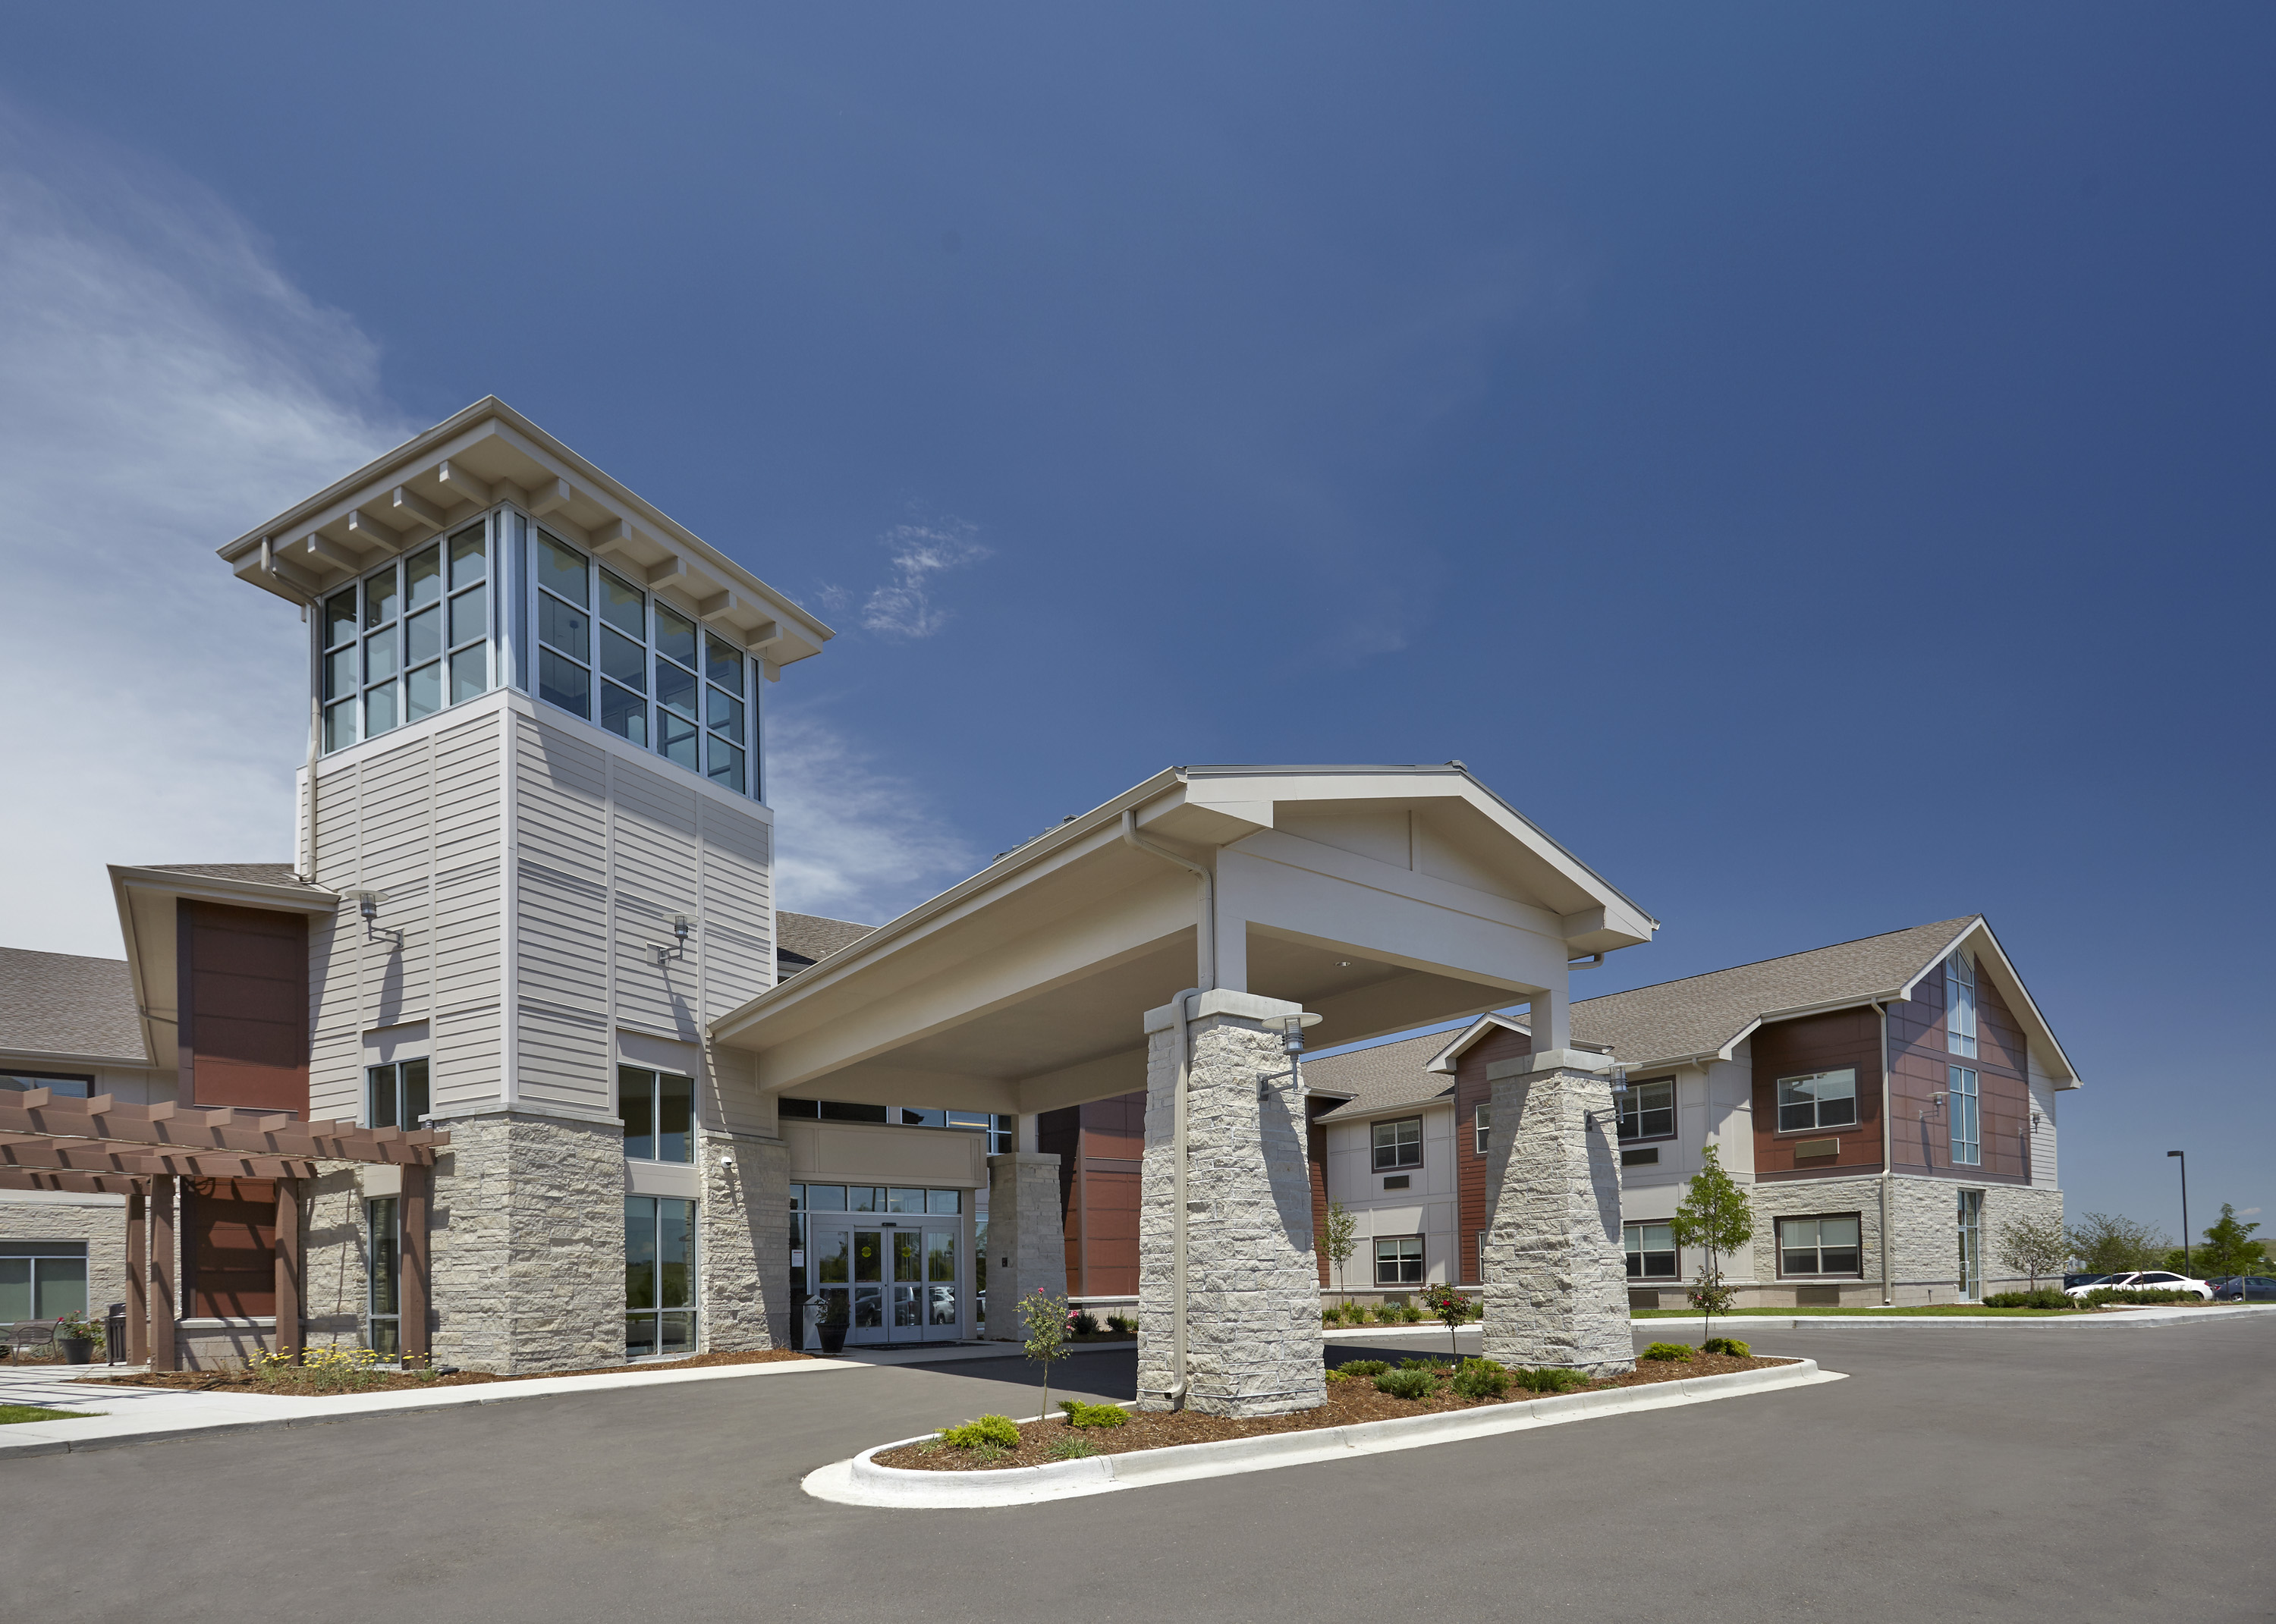 Architects Win Design Award For Senior Living Innovation | Design Inspirations